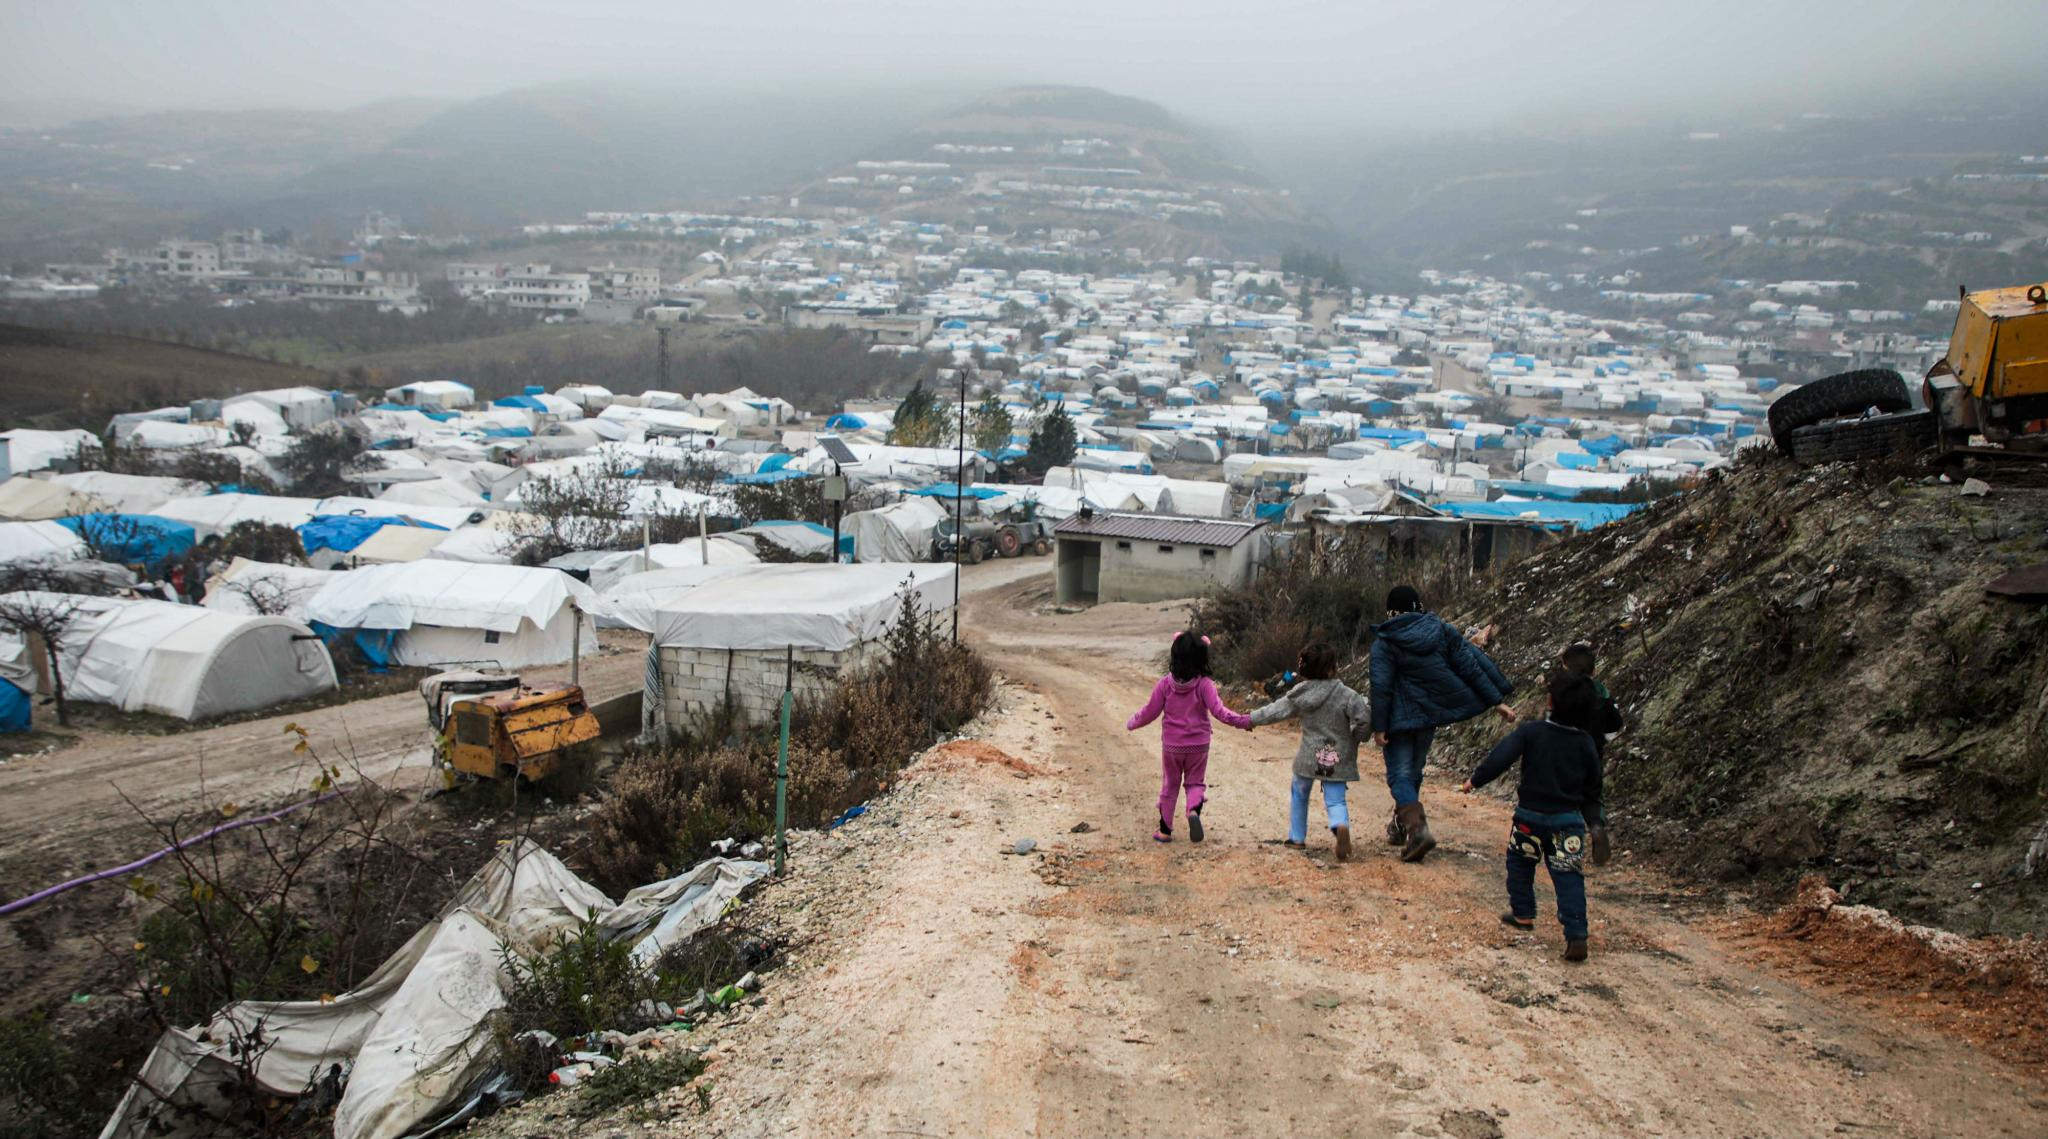 UN: More Than 235,000 Flee Northwest Syria Amid Russian Attacks